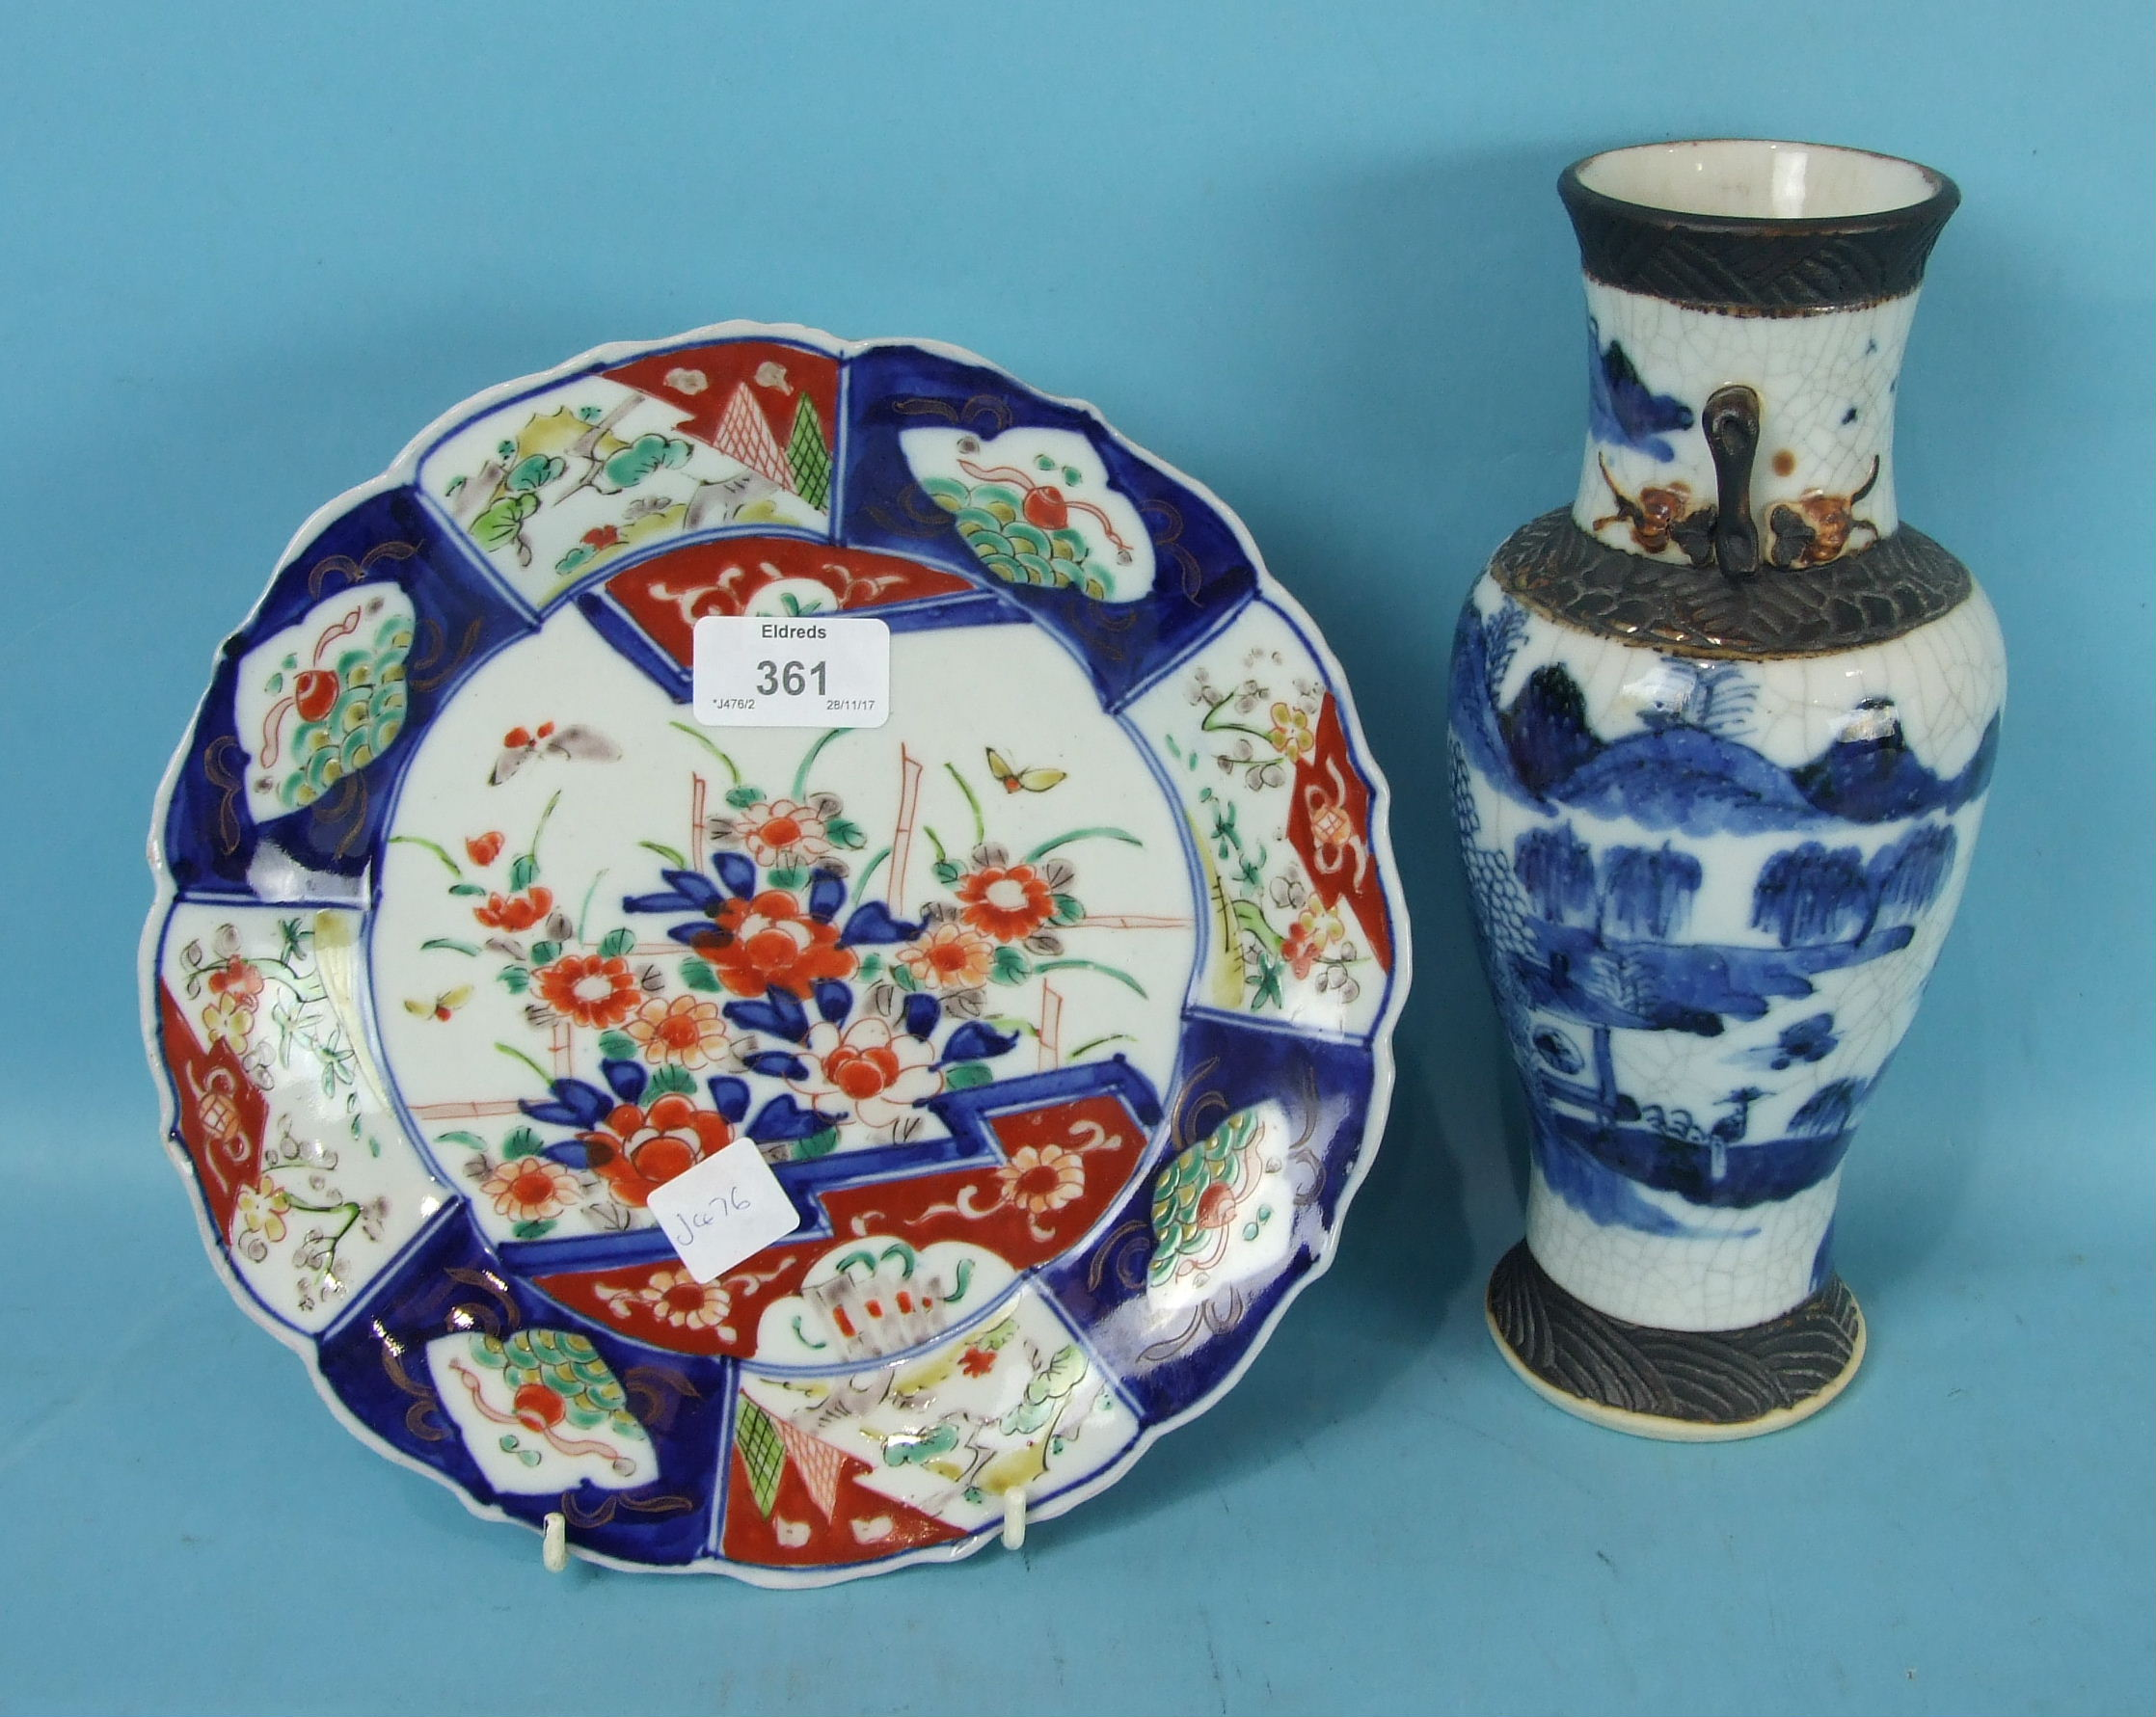 Lot 361 - A 19th century Chinese crackle glaze vase and an Imari plate, (2).